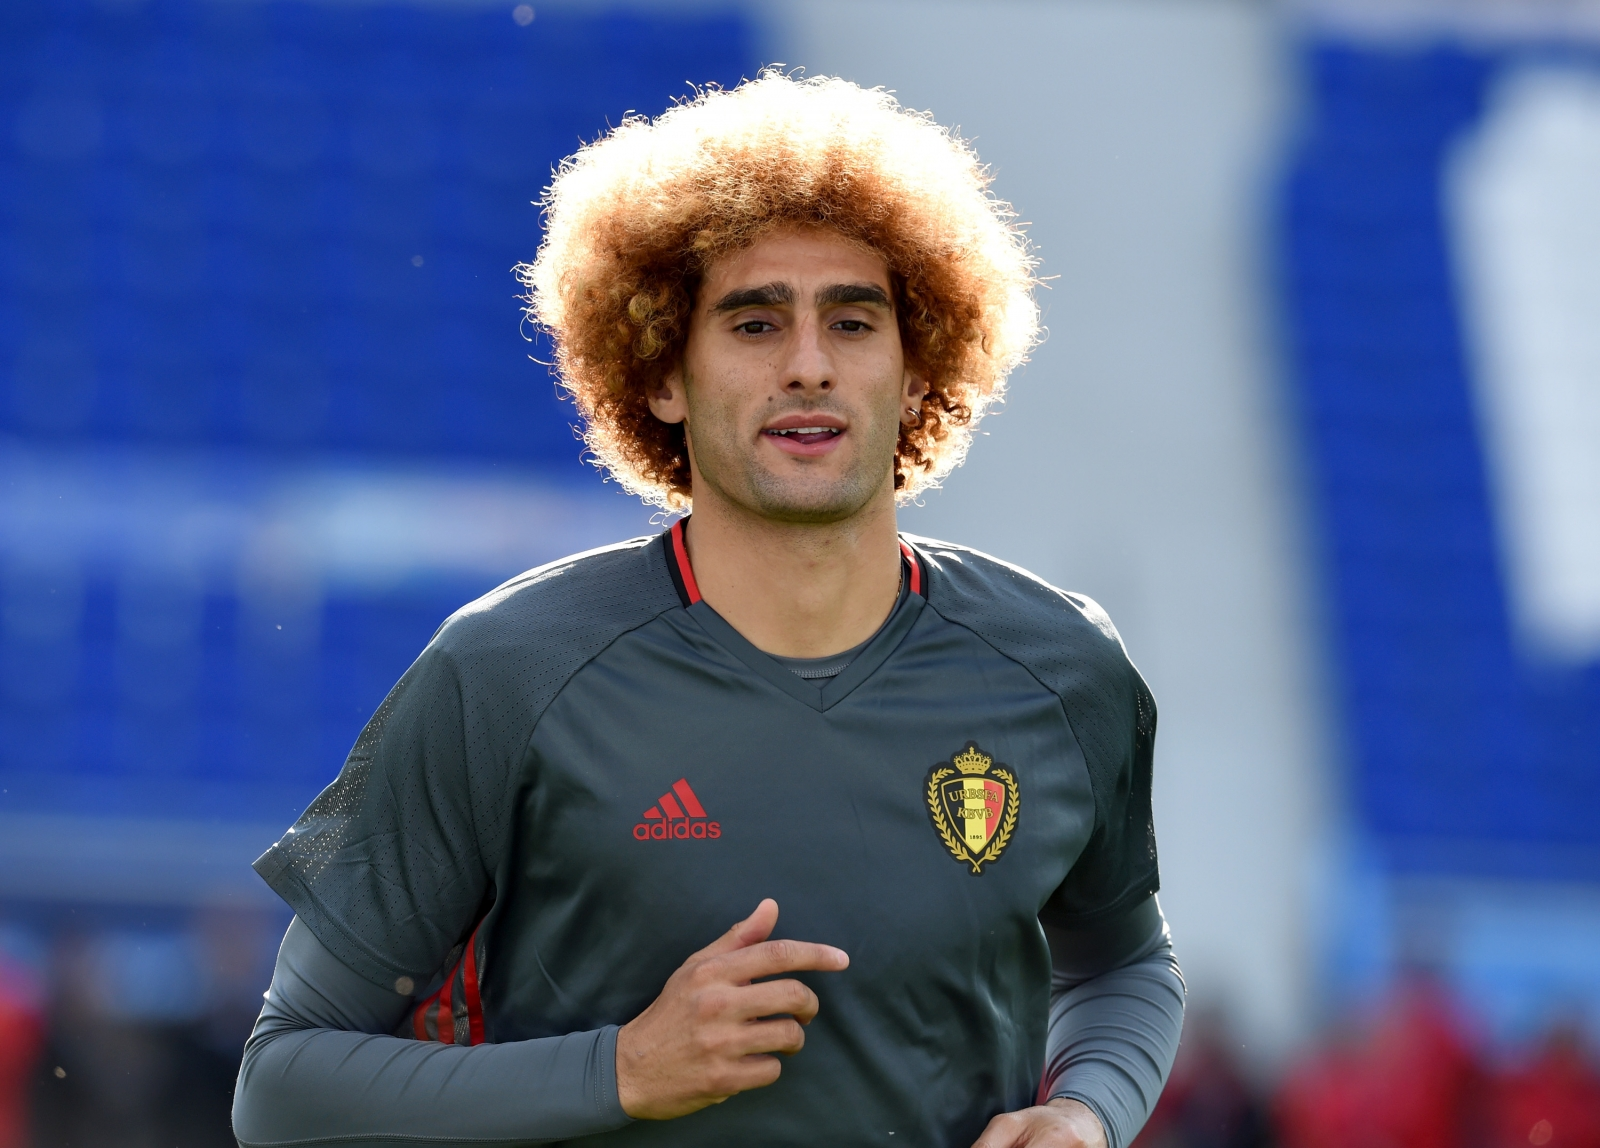 Manchester United Roy Keane claims Marouane Fellaini has been a